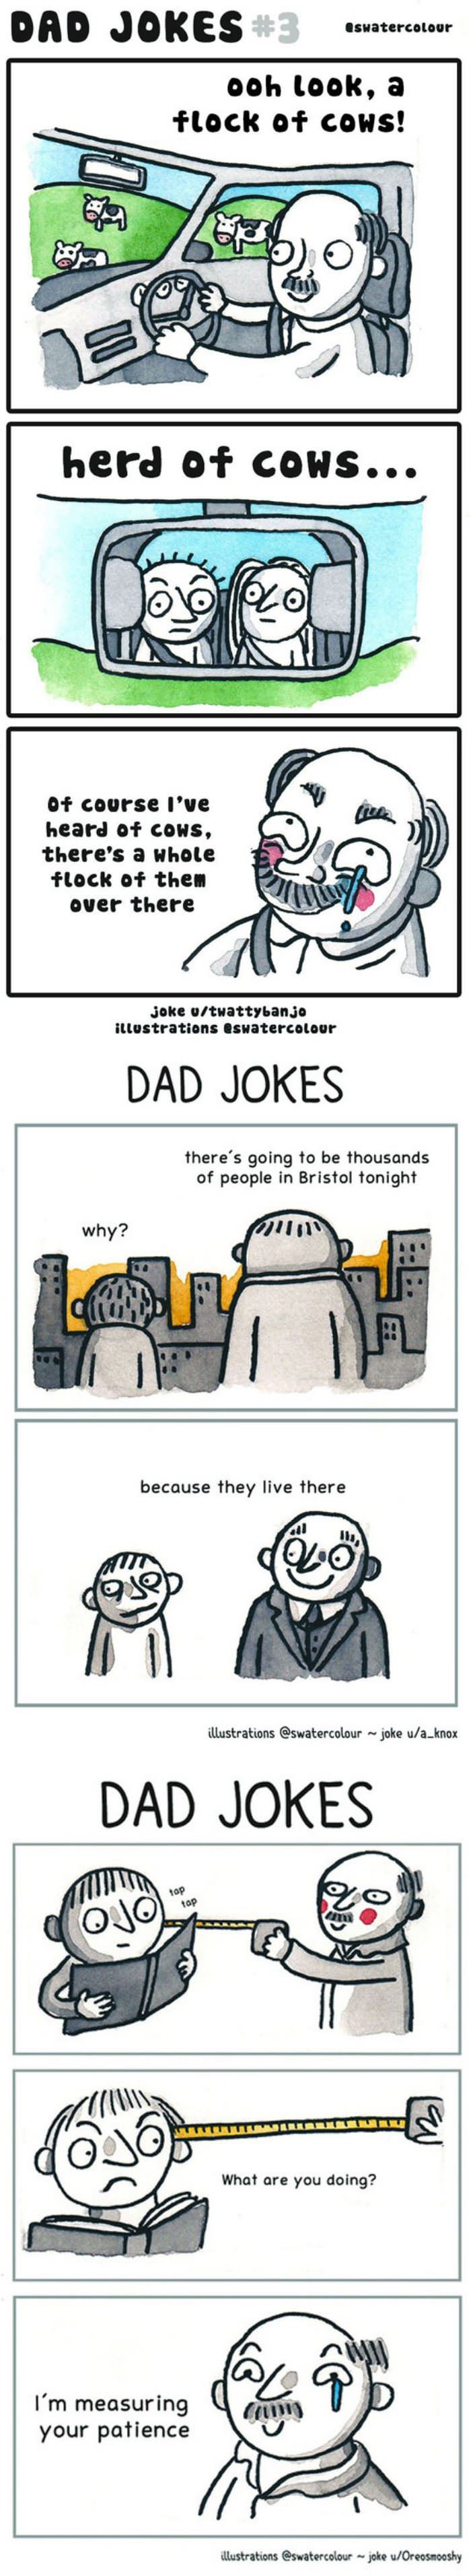 some dad jokes funny picture